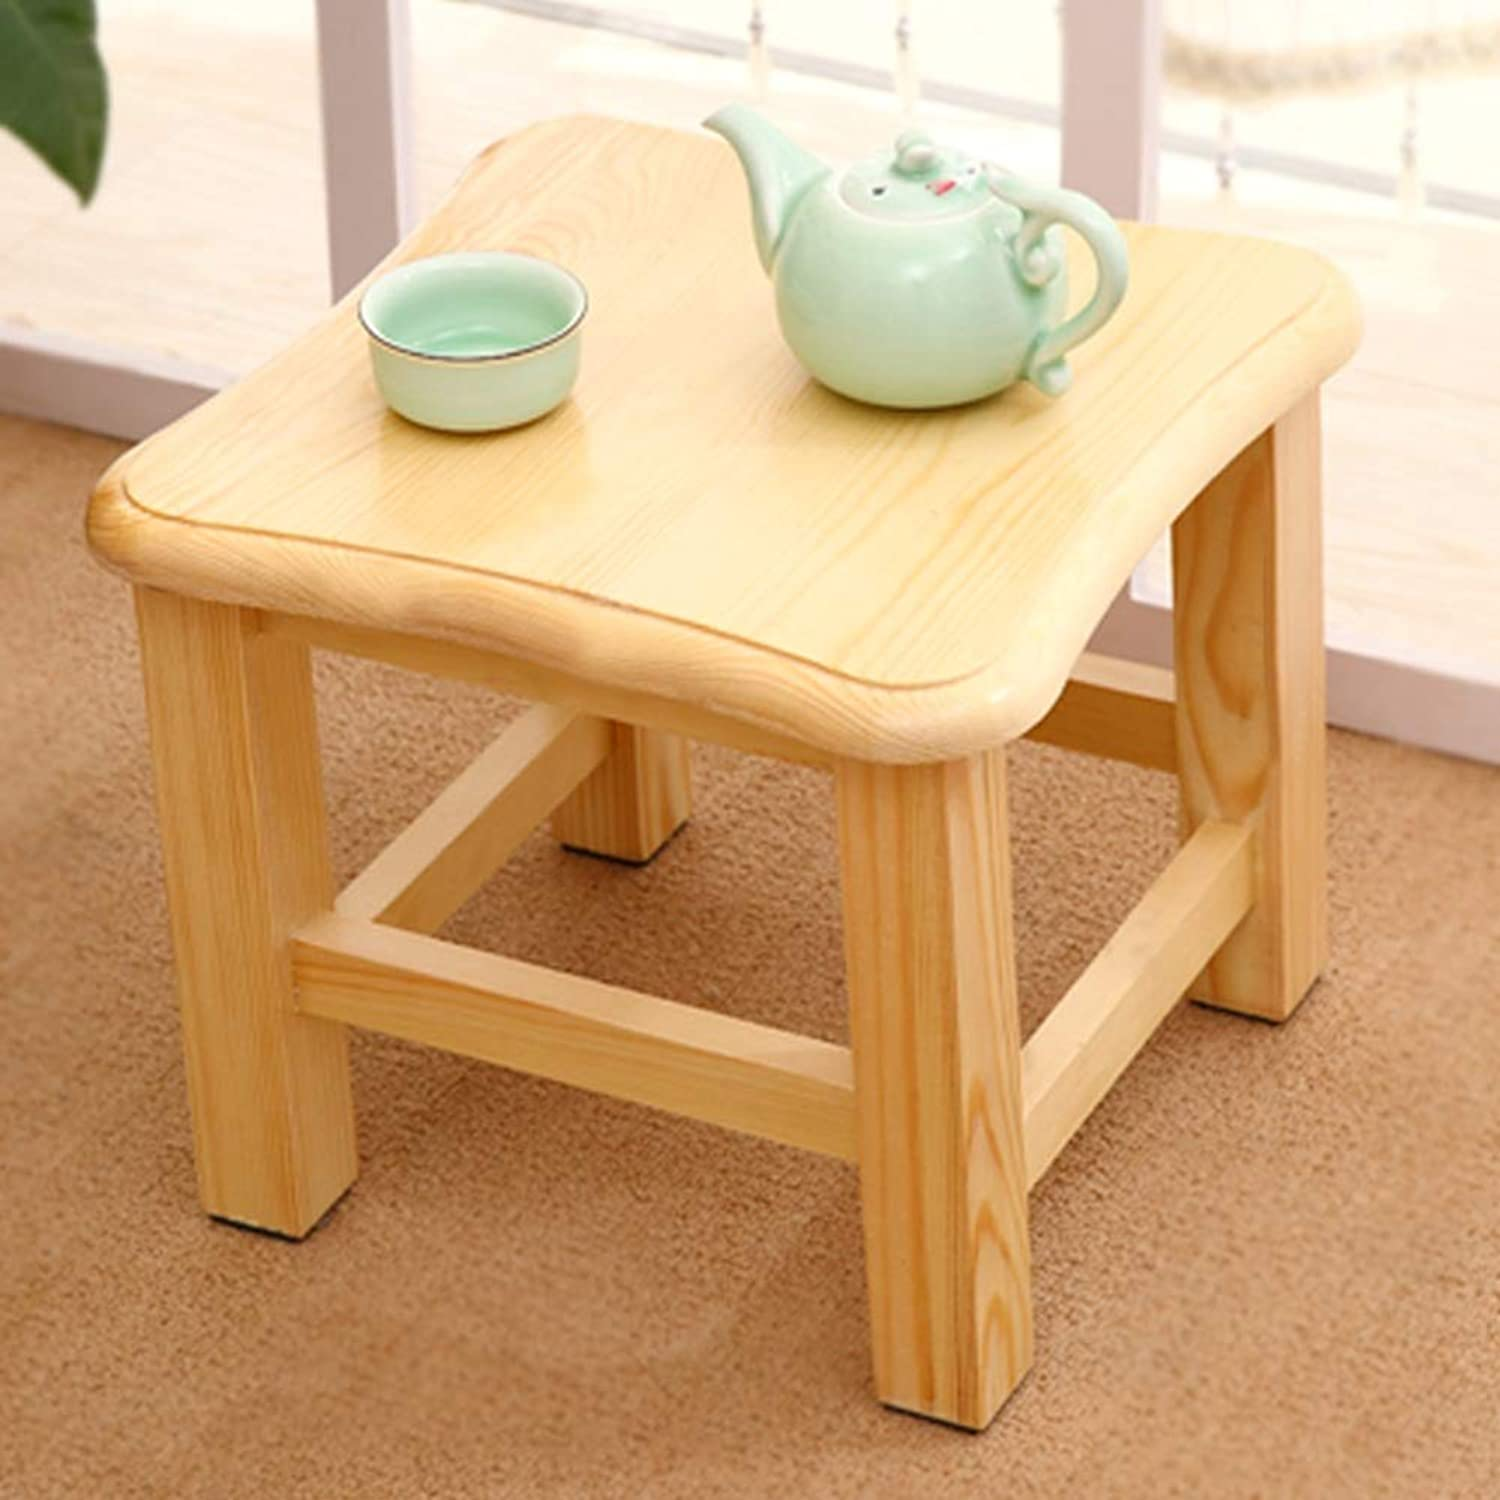 BBG Fashion Creative Small Furniture Anti-Slip Stool Simple Modern Pure Solid Wood Small Square Stool Short shoes Bench Multi-Function Coffee Table Stool Multifunction Household Creative